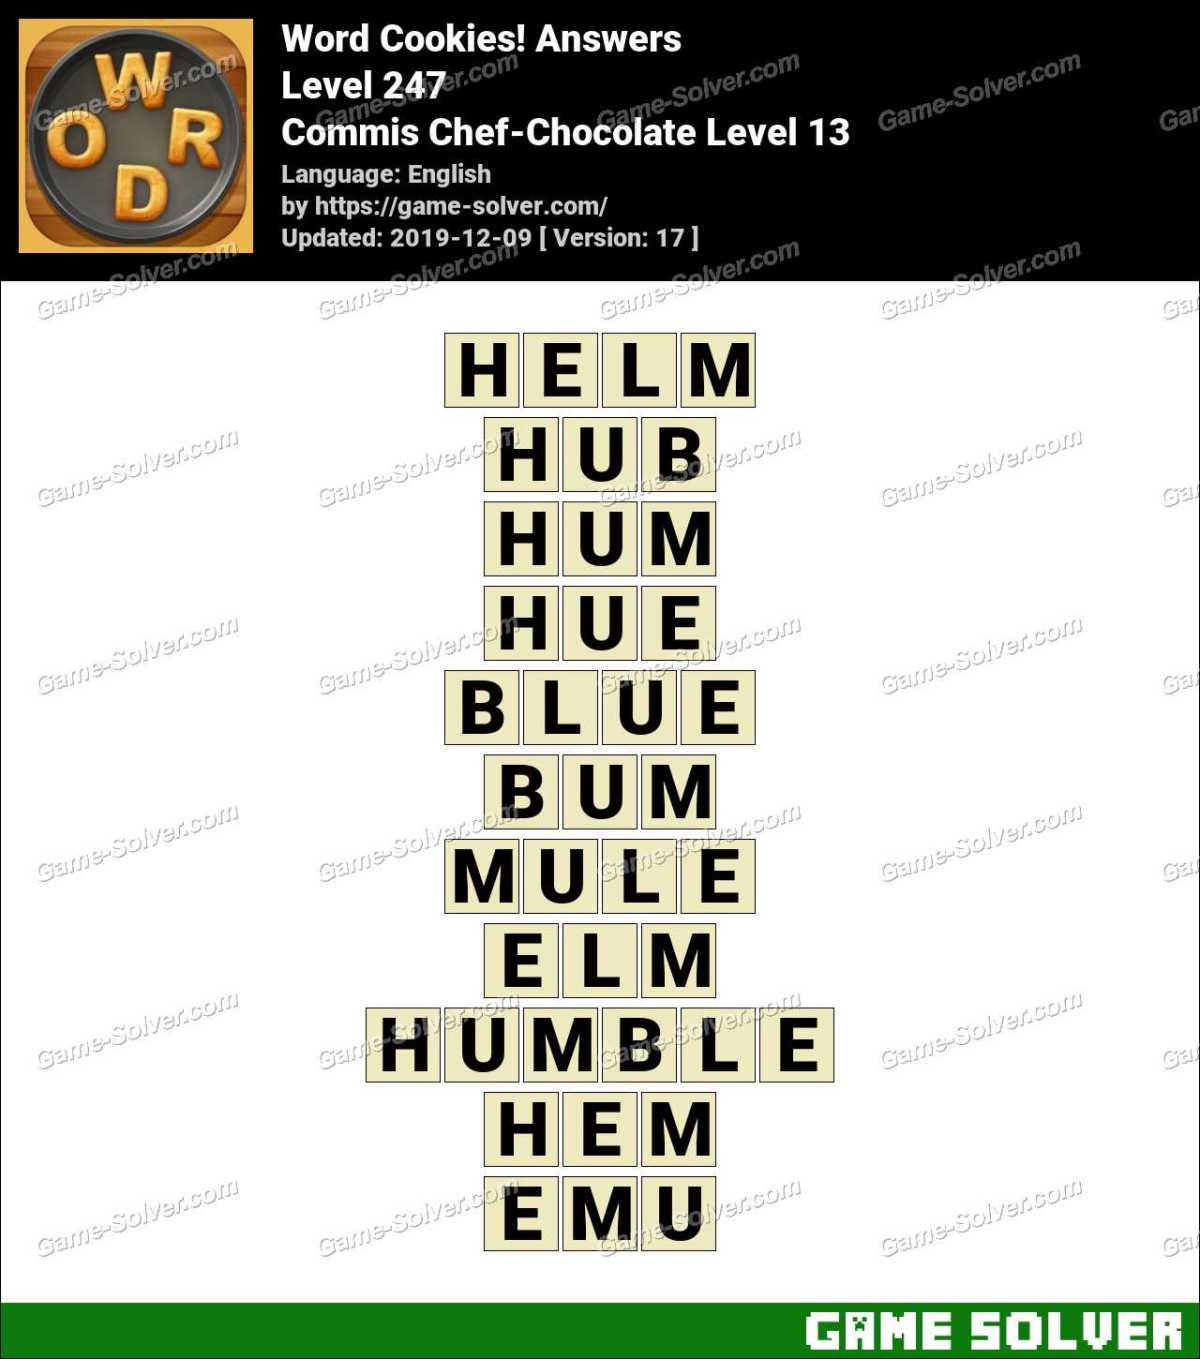 Word Cookies Commis Chef-Chocolate Level 13 Answers